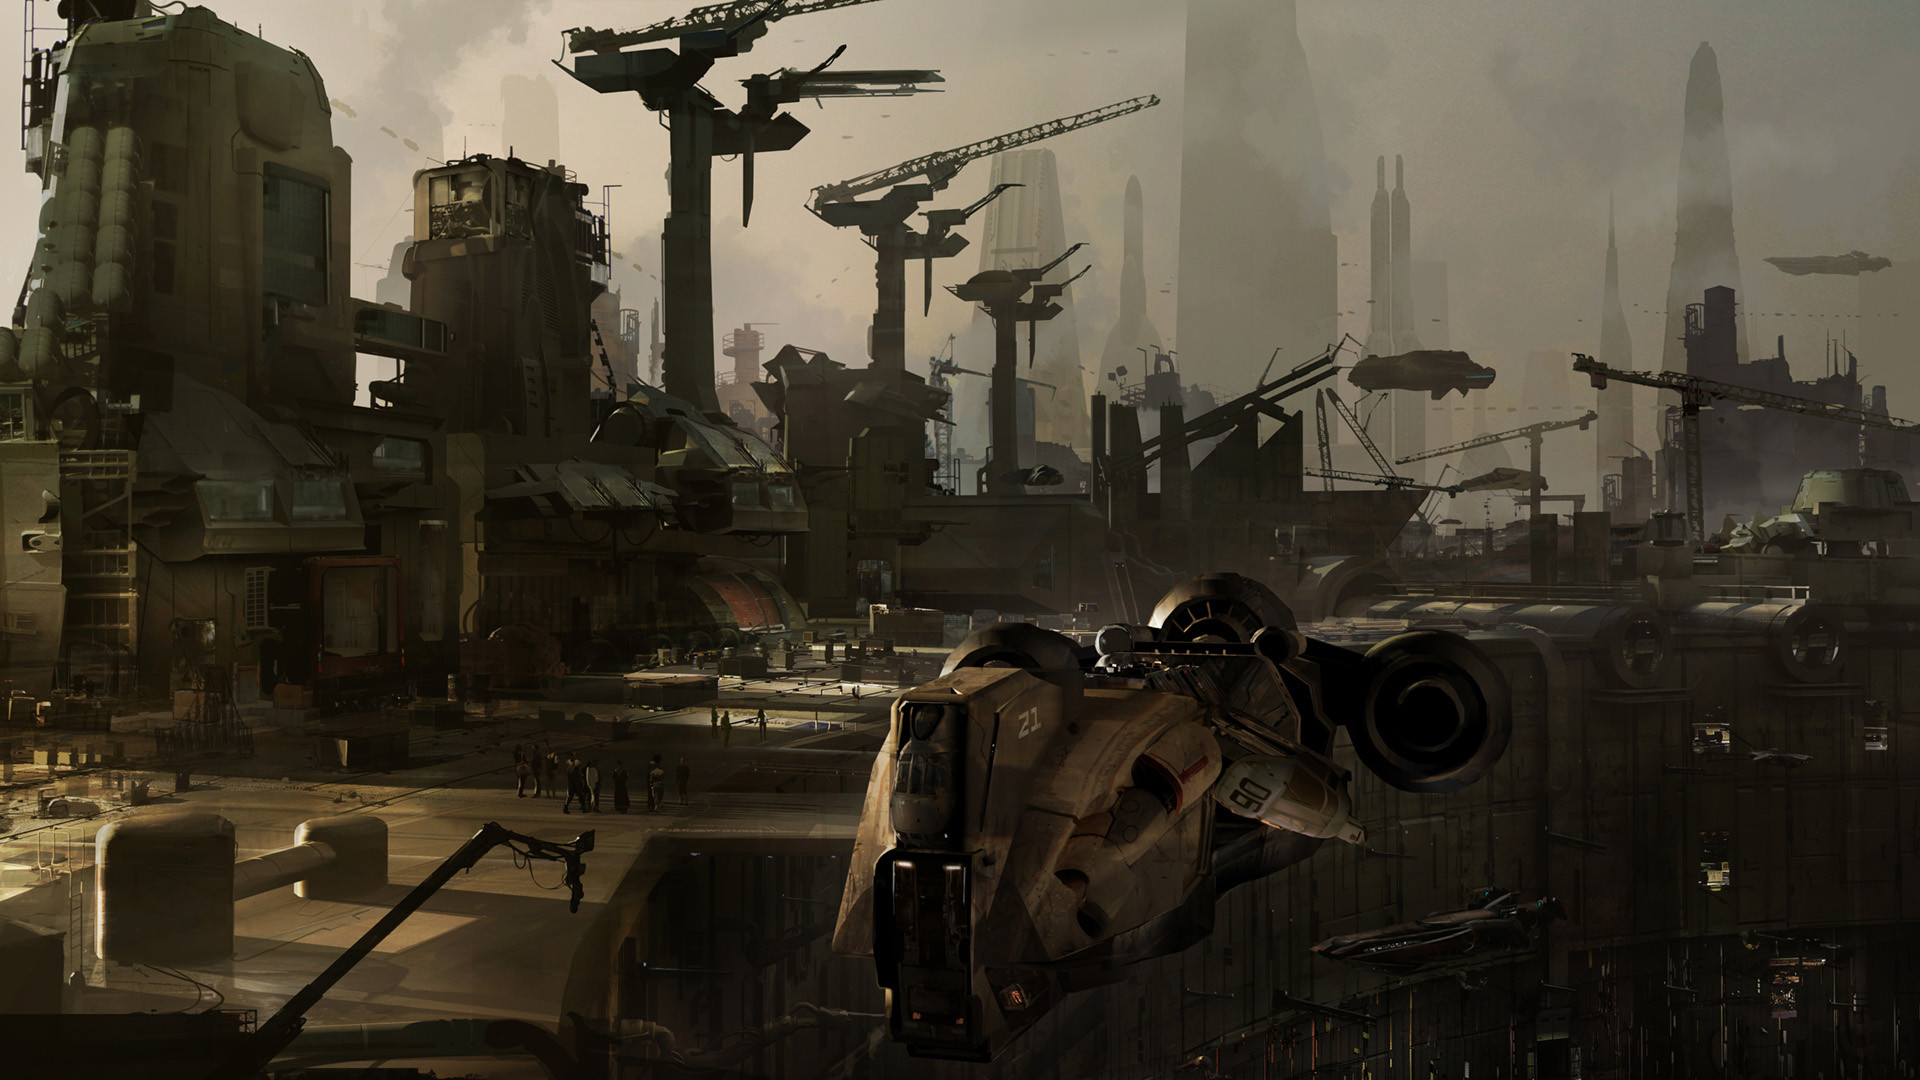 Yeah, That Cancelled Star Wars Game Looked Pretty Cool